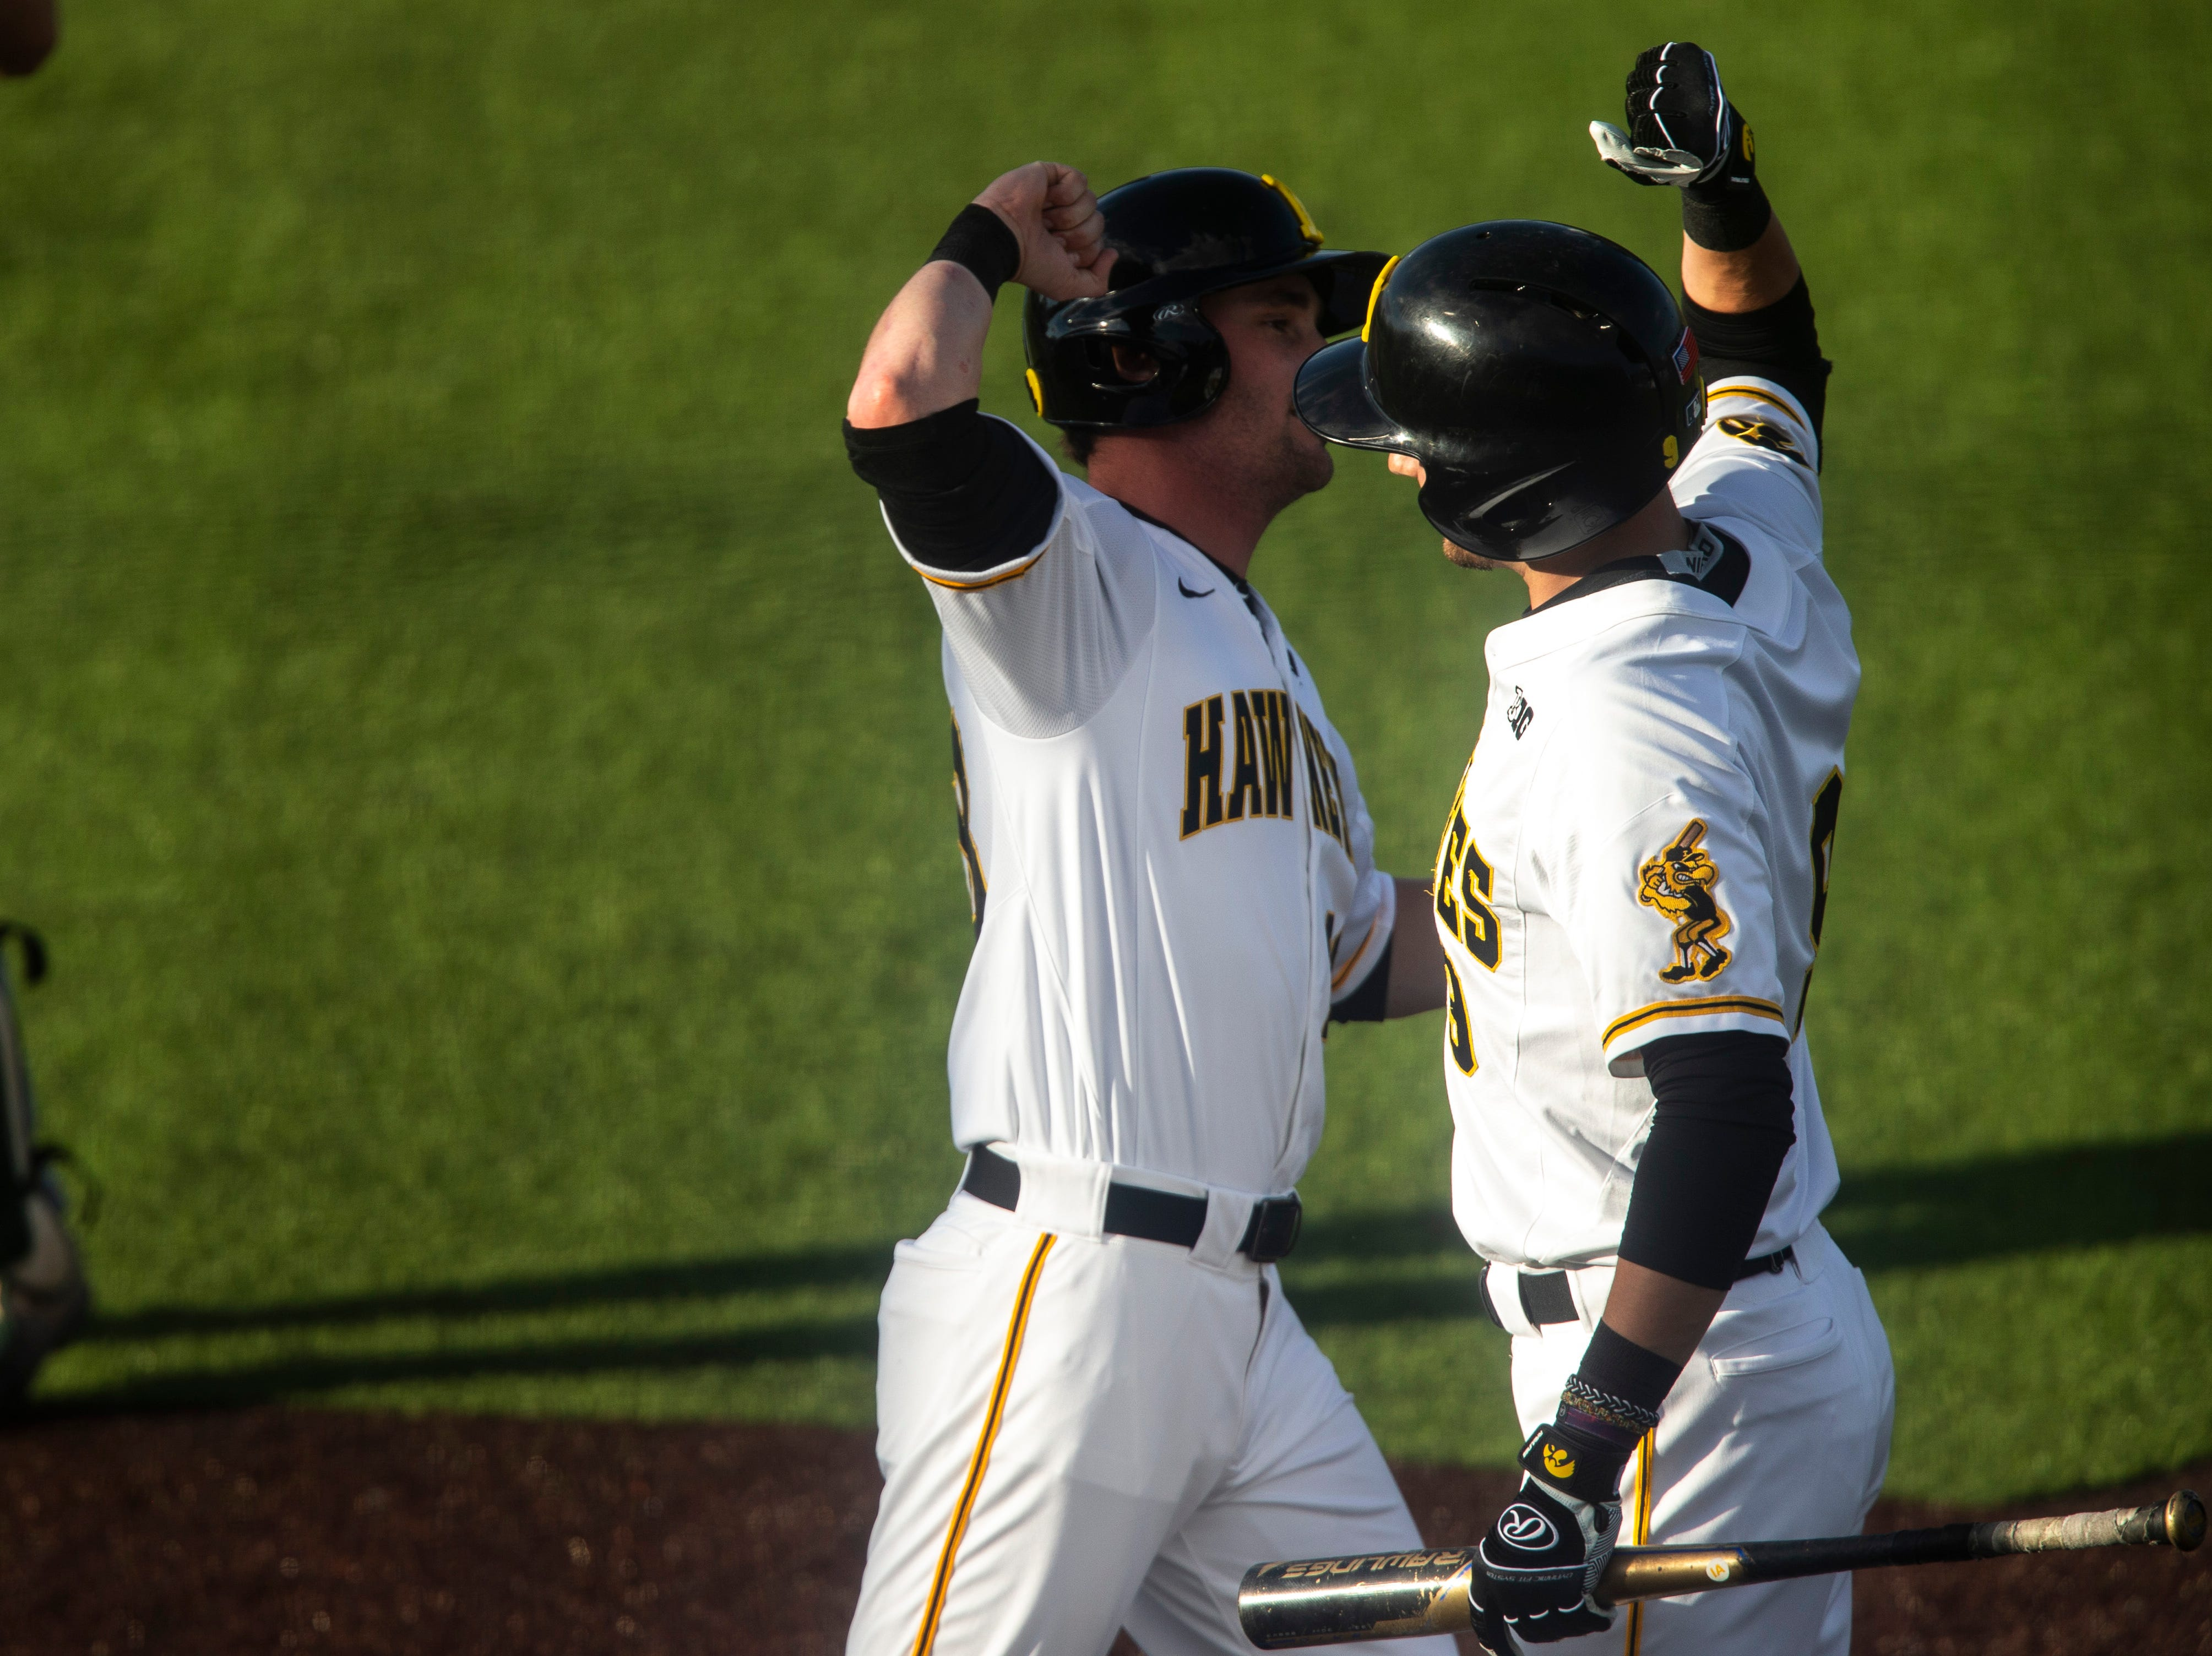 Iowa's Chris Whelan, left, celebrates with teammate Ben Norman after scoring a run during a NCAA Big Ten Conference baseball game, Friday, May 10, 2019, at Duane Banks Field on the University of Iowa campus in Iowa City, Iowa.